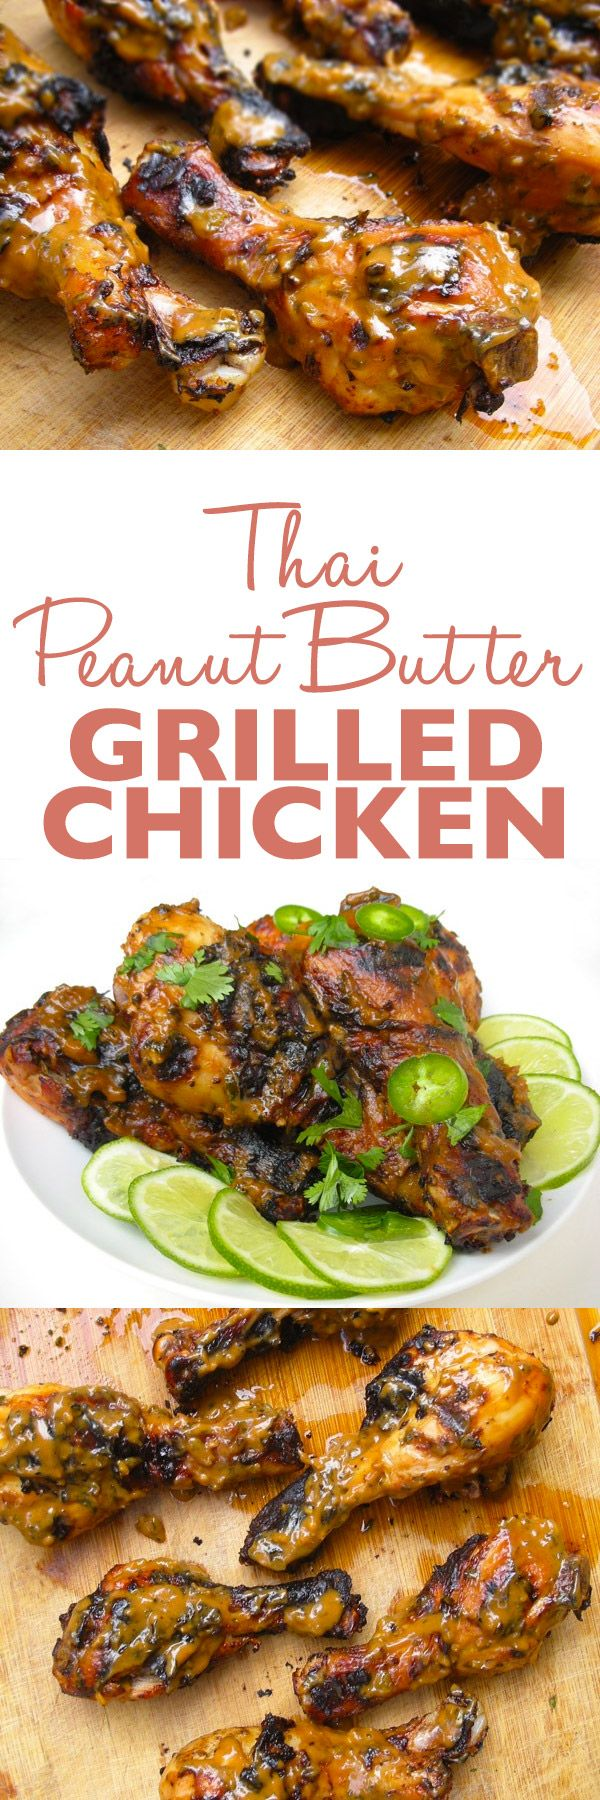 Thai Peanut Butter Grilled Chicken Recipe - Chicken drumsticks are seasoned with a Thai peanut butter marinade, grilled, and then finished with a thick, slightly sweet sauce.